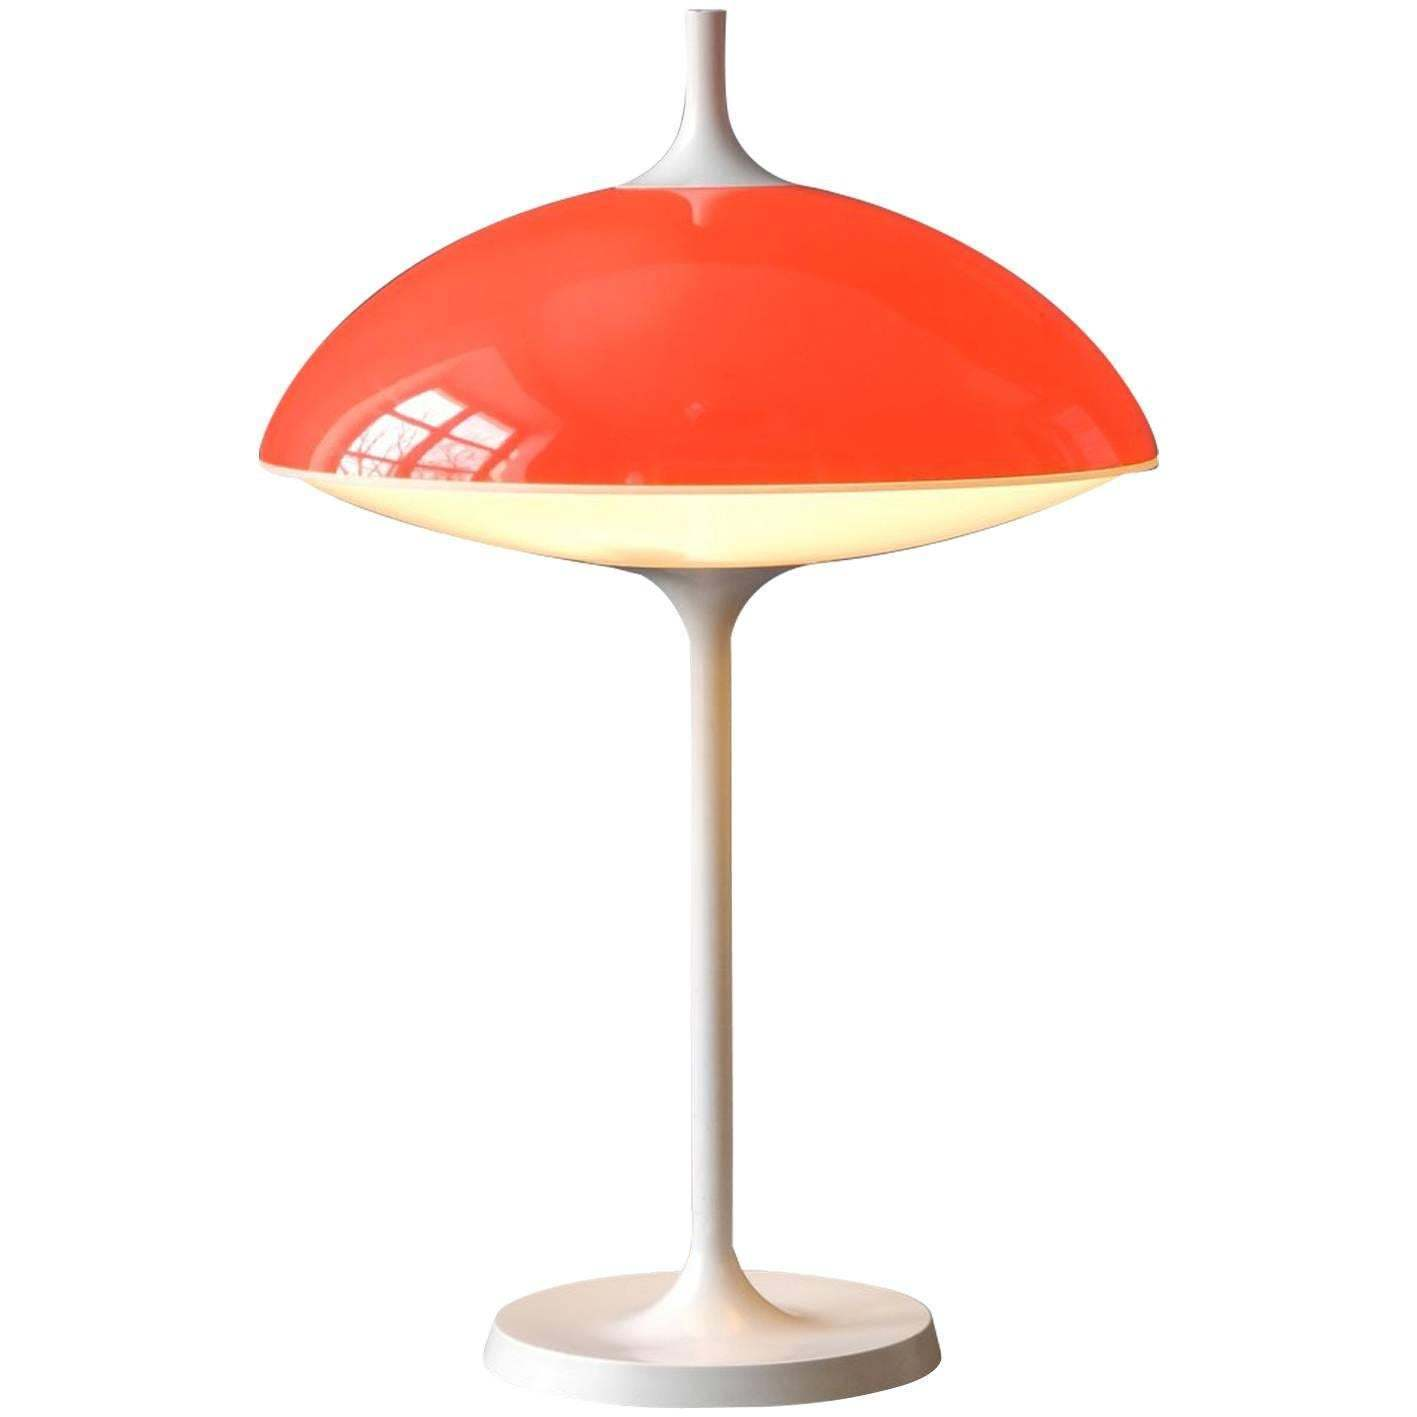 Lamp 1960s By Temde Switzerland Pop Art Age Table Large Space In Made T1cFlKJ